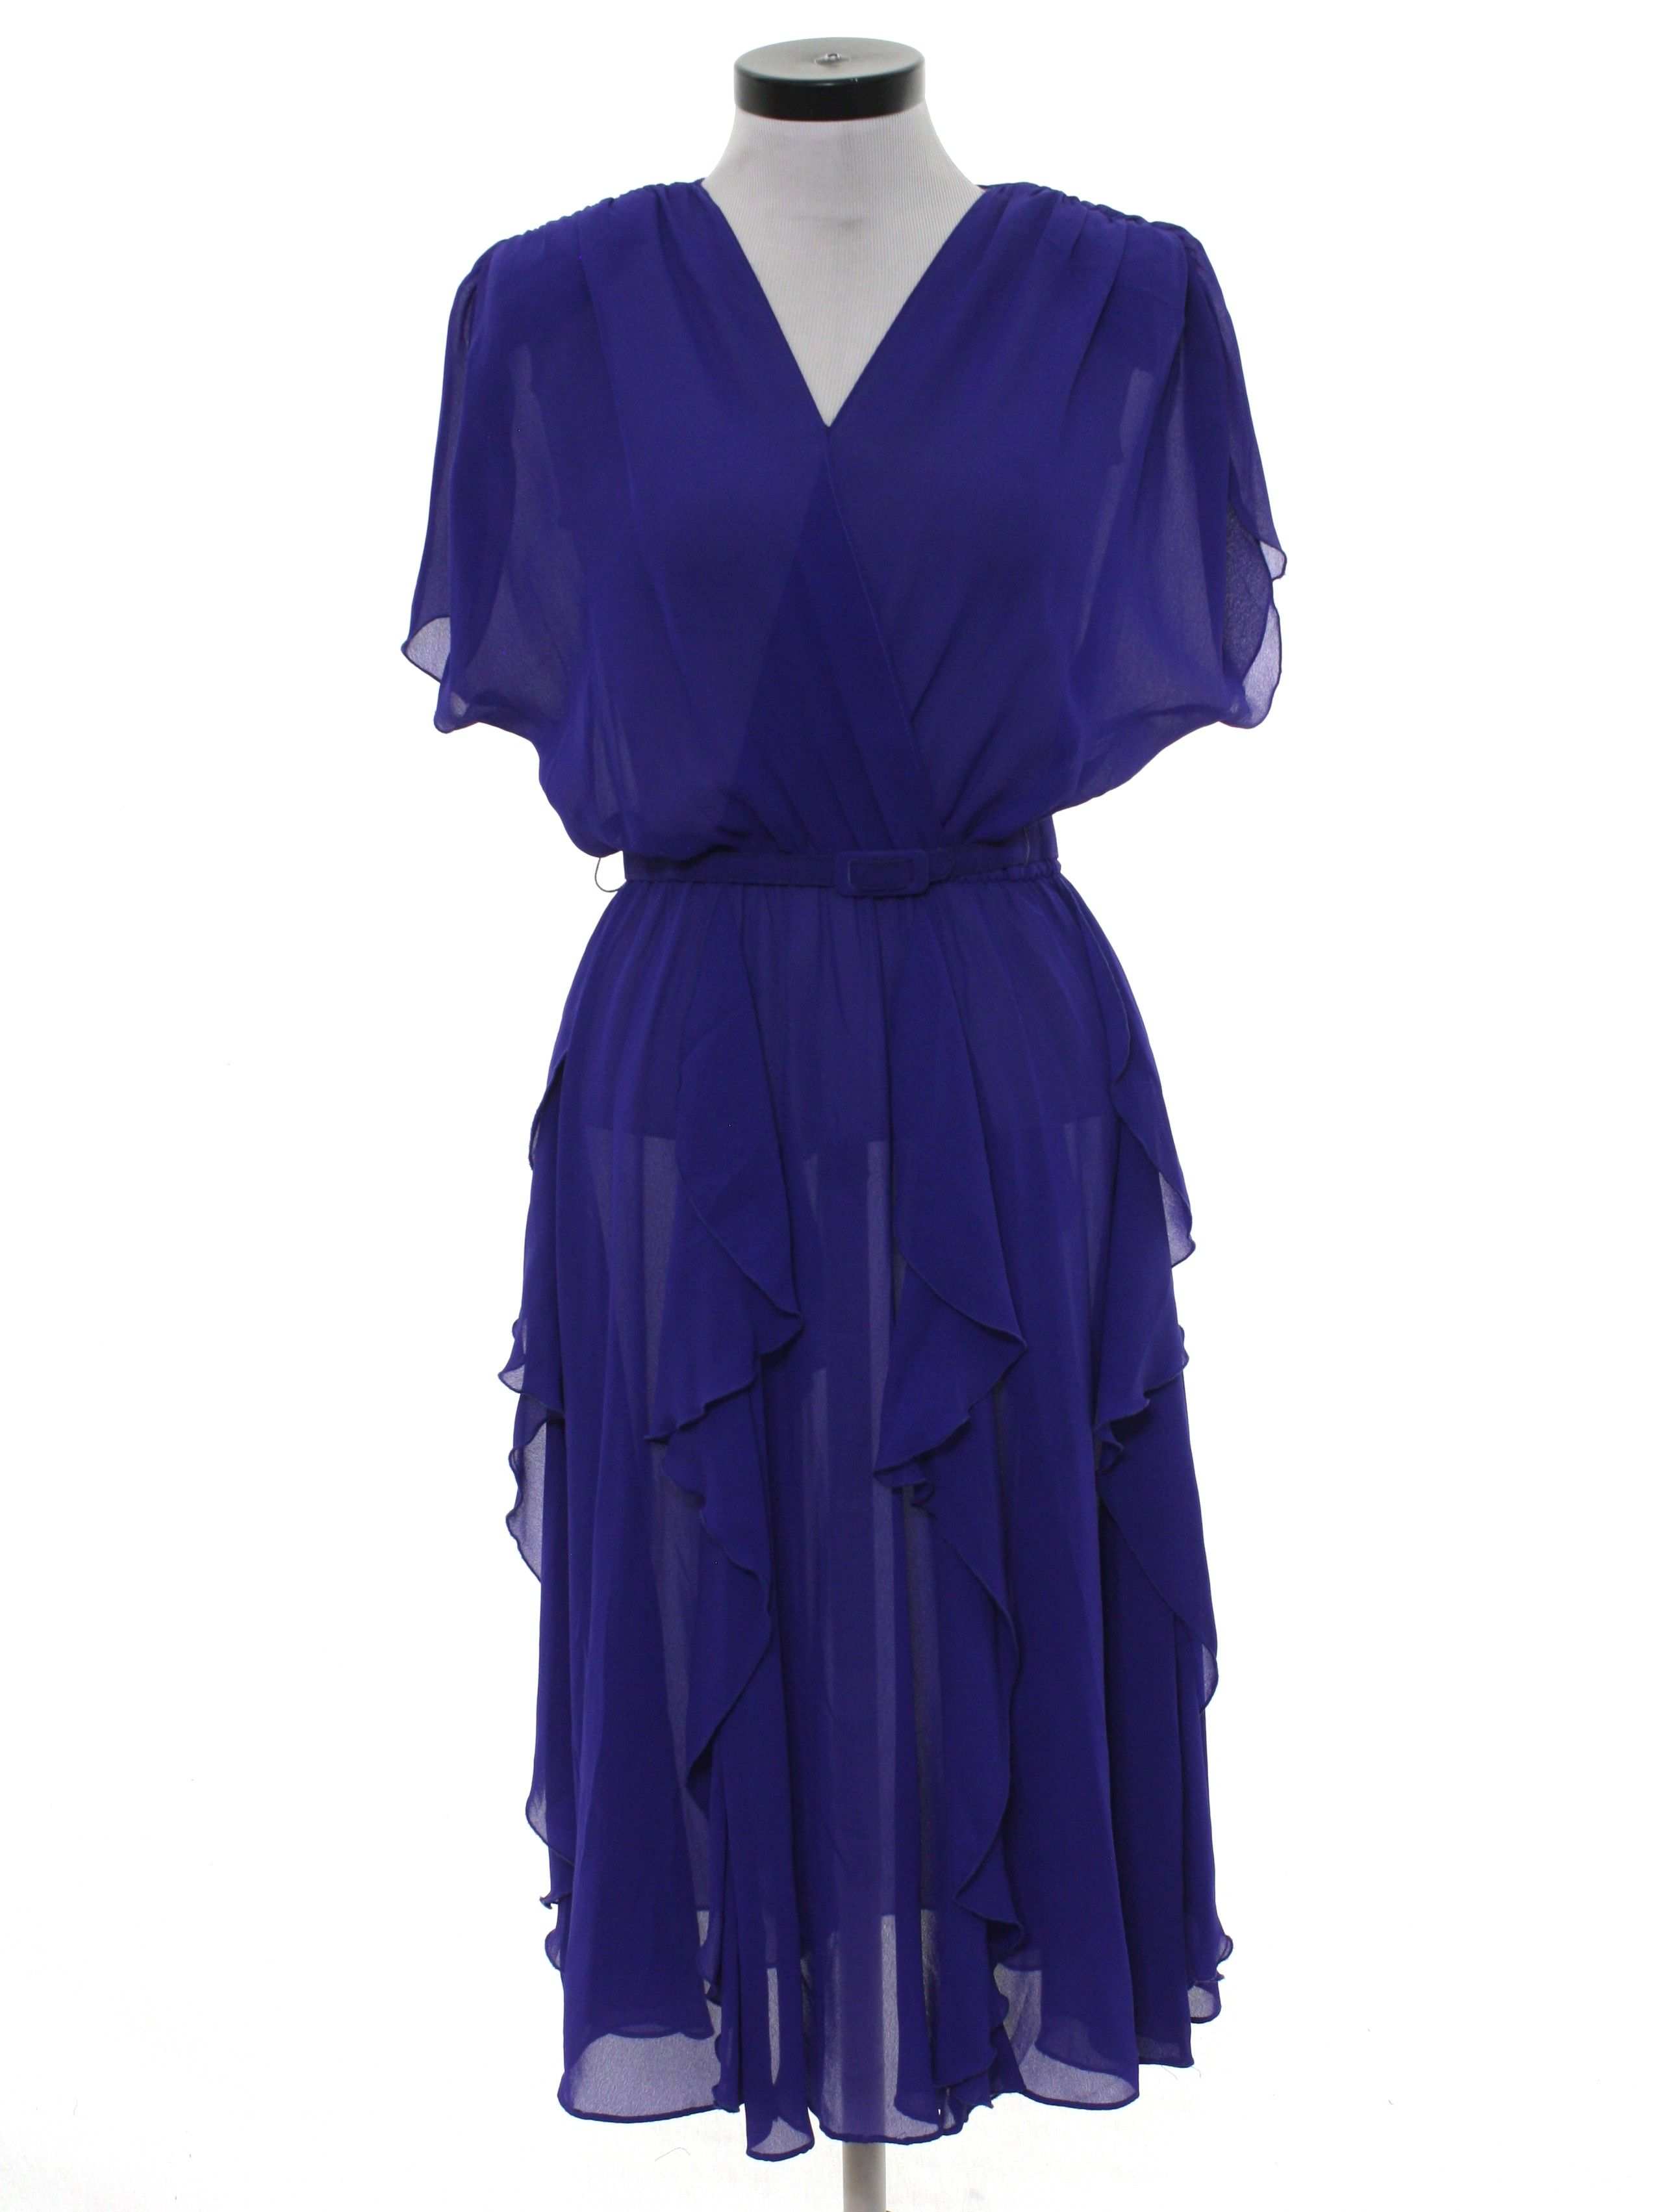 5dc0089fa803 80 s Missing Label Cocktail Dress  80s -Missing Label- Womens sheer dark  purple background